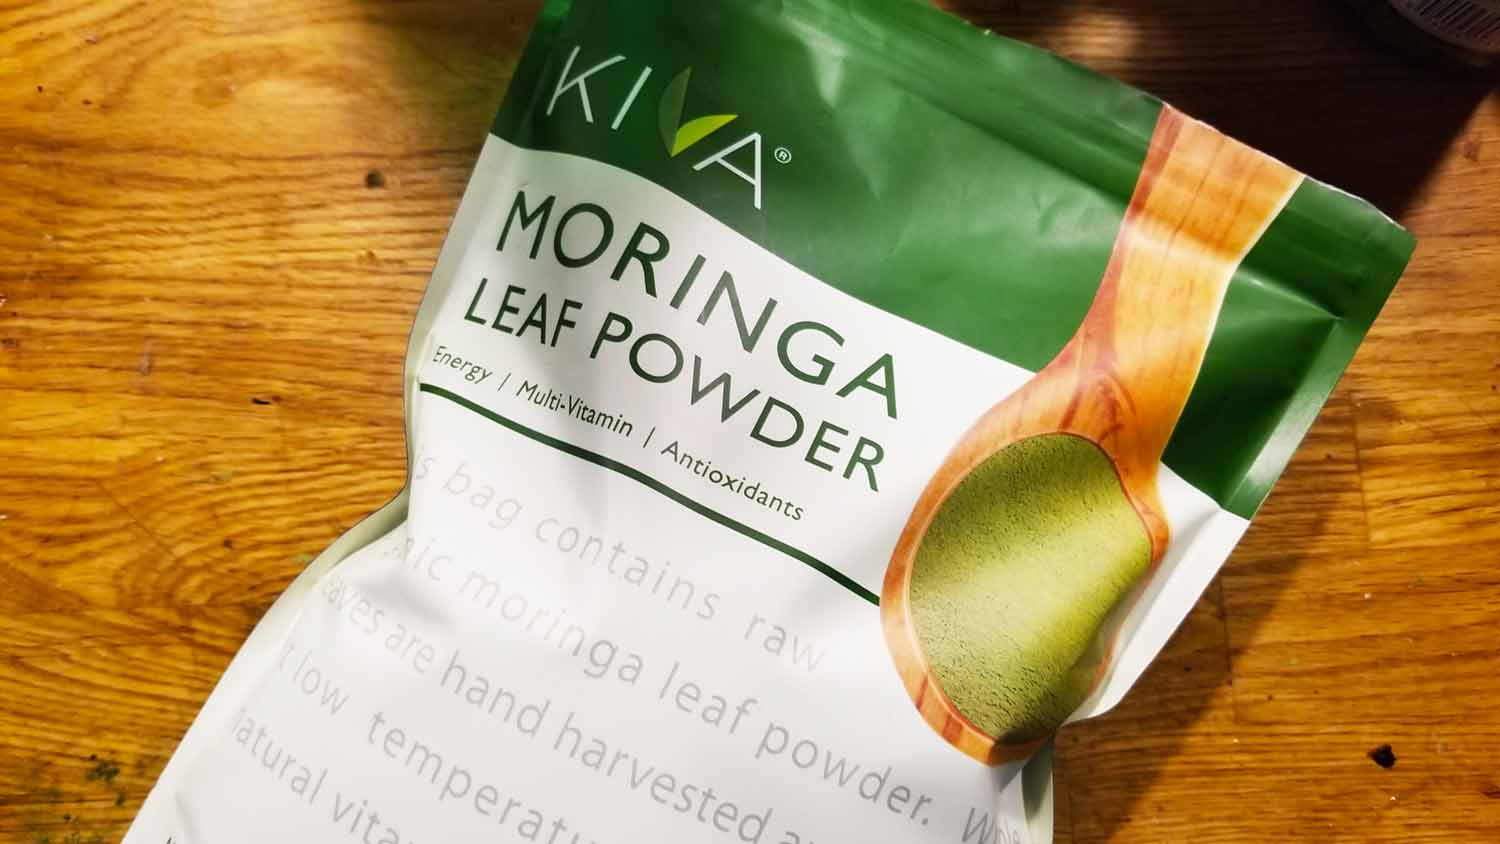 The Amazing Health Benefits Of Moringa Leaf Powder